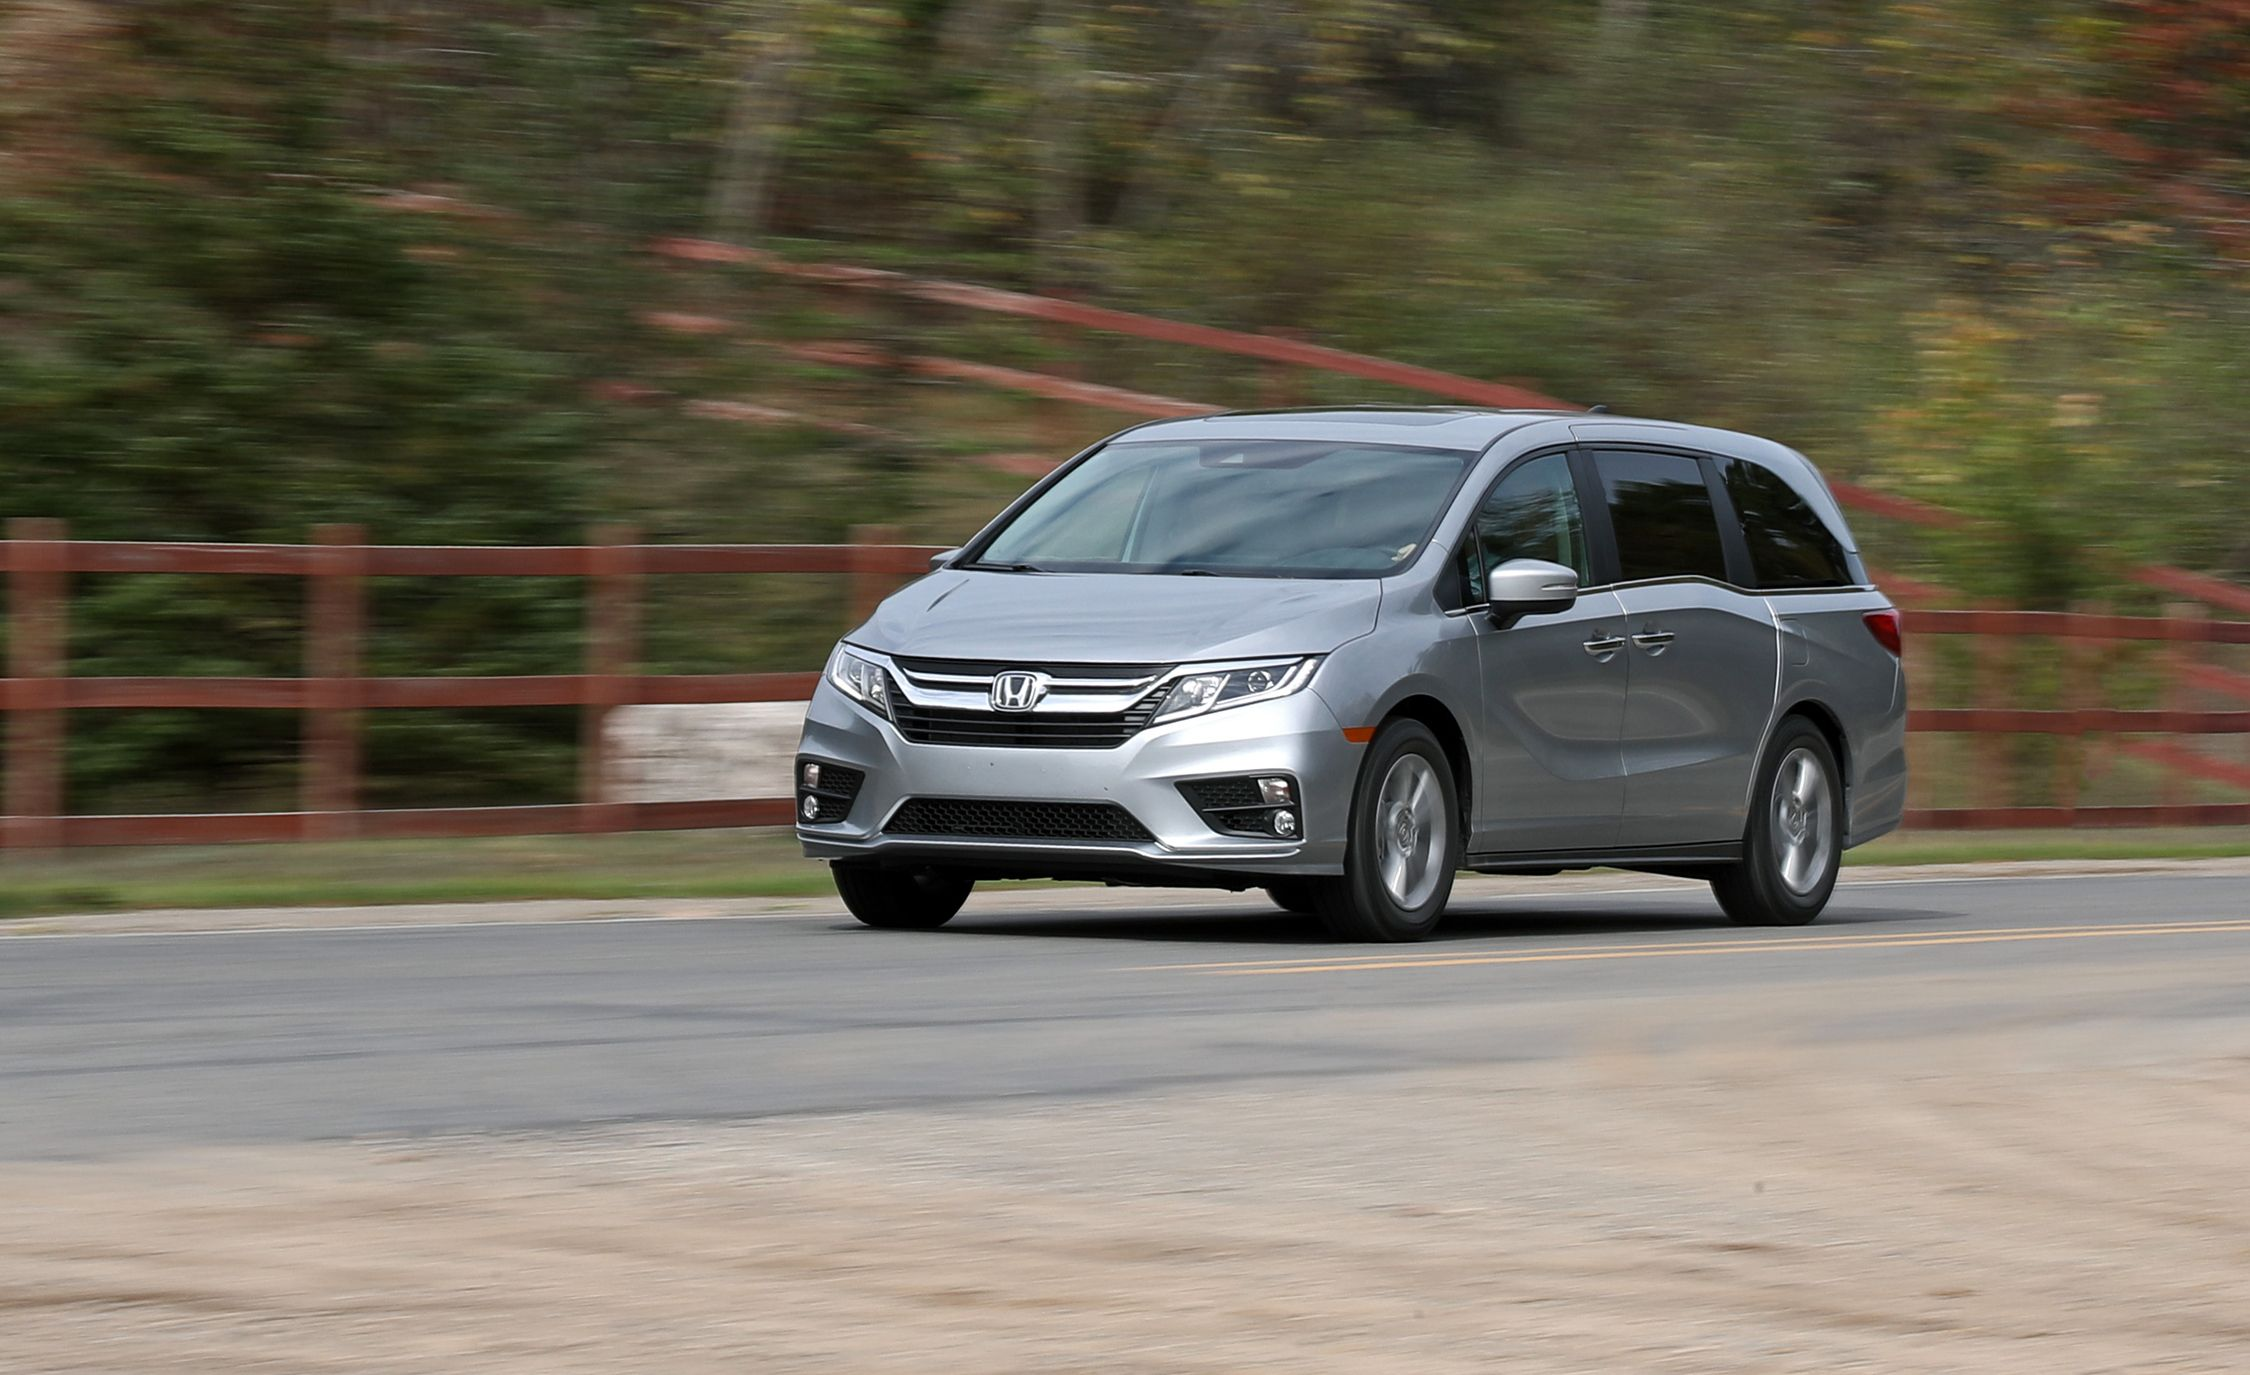 2018 Honda Odyssey Tested With Nine Speed Automatic Review Car